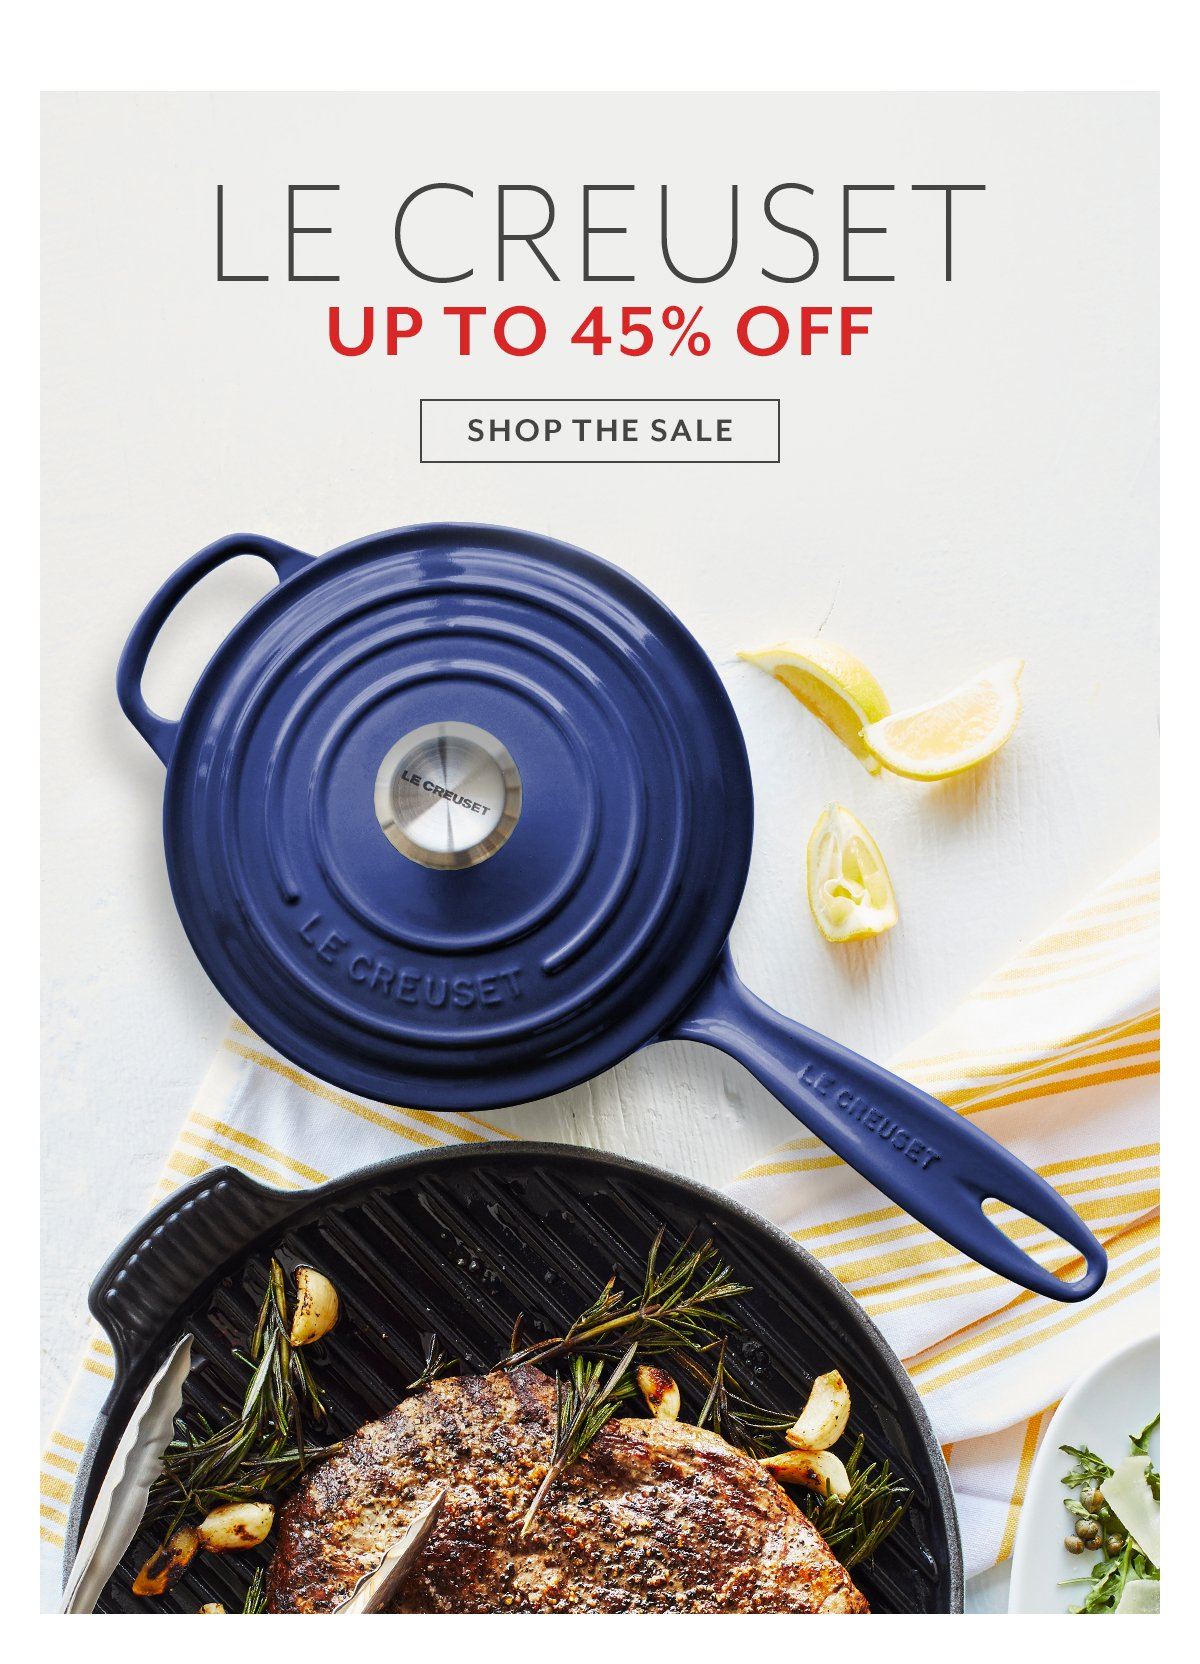 Le Creuset up to 45% Off